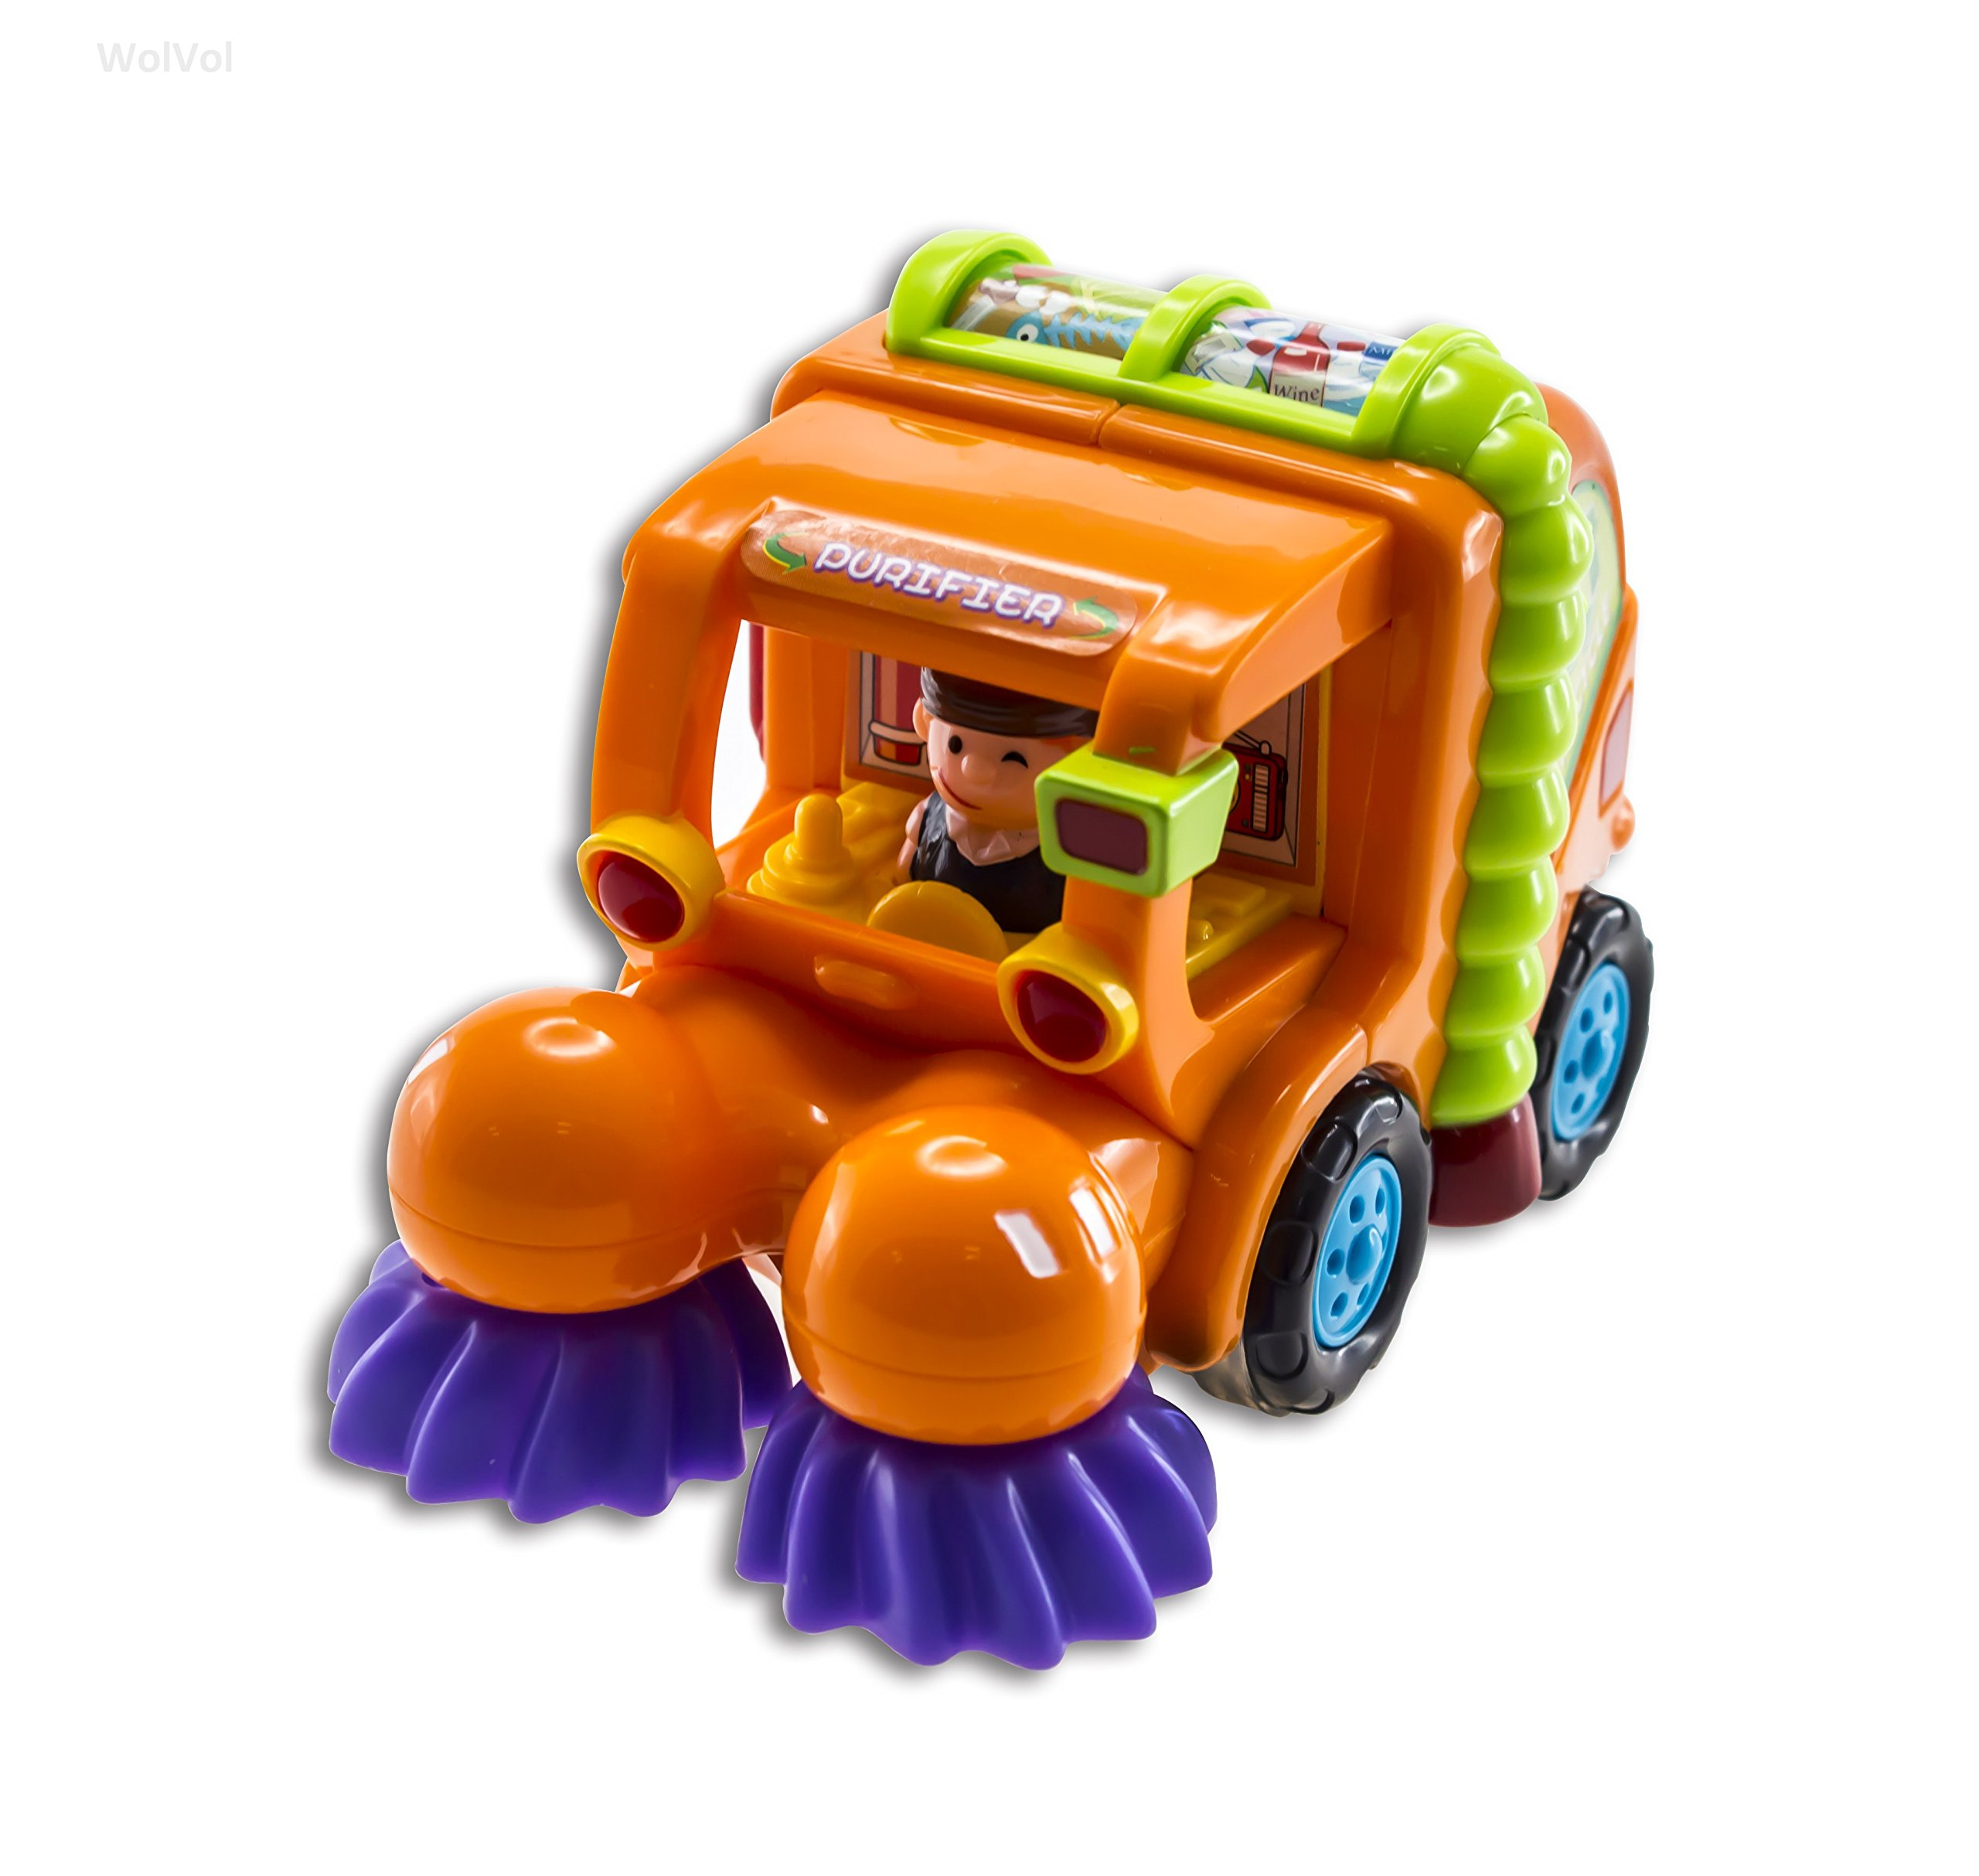 WolVol (Set of 3) Push and Go Friction Powered Car Toys for Boys - Street Sweeper Truck, Cement Mixer Truck, Harvester Toy Truck (Cars Have Automatic Functions) by WolVol (Image #2)